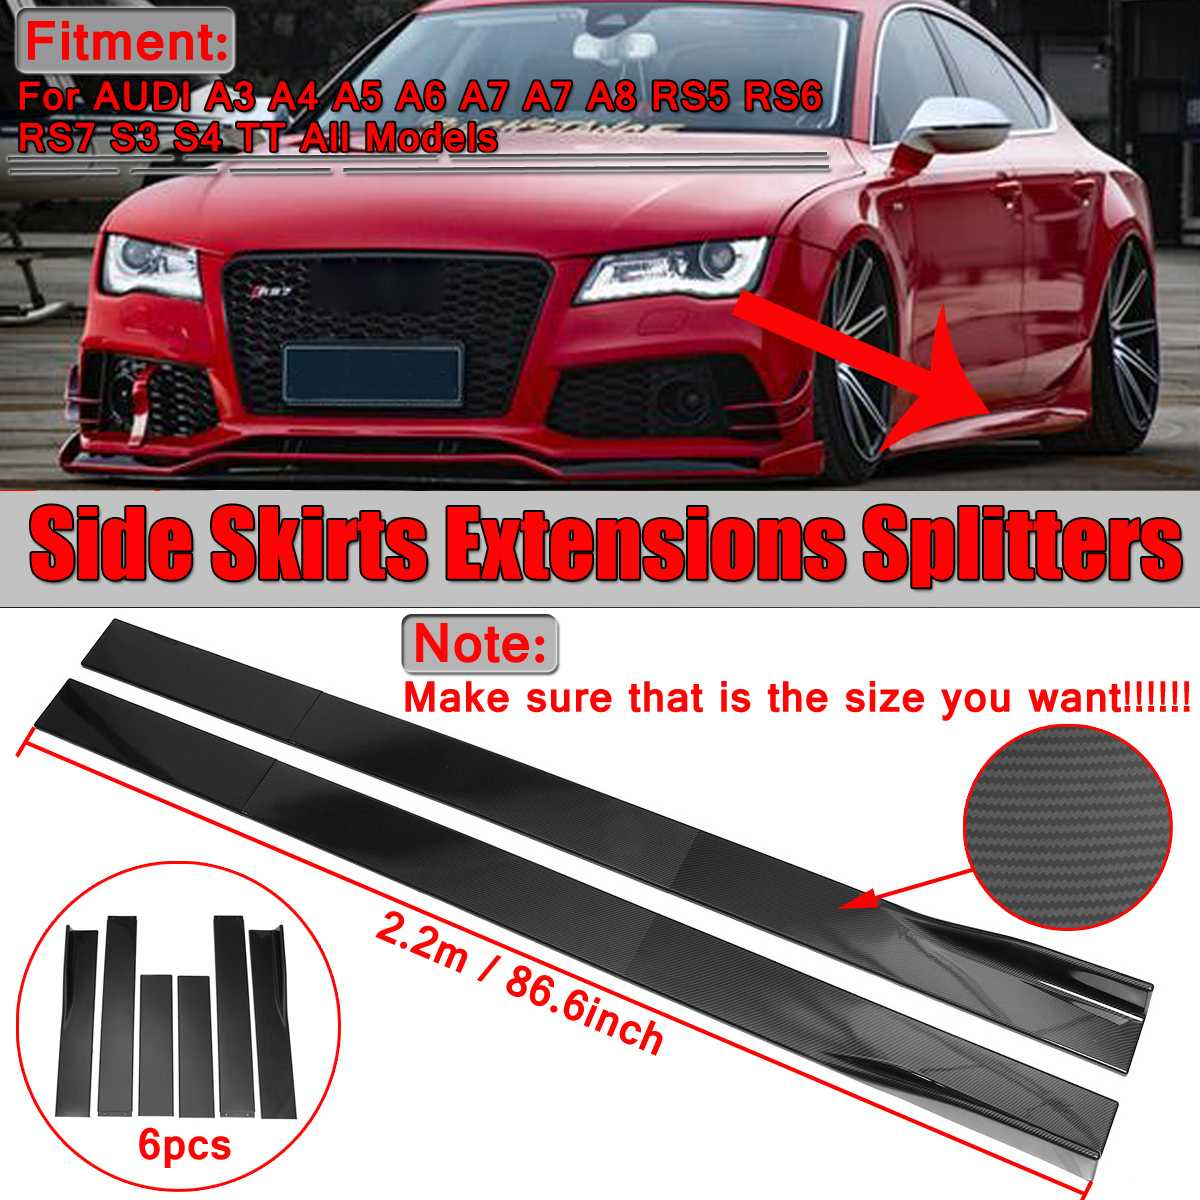 Pair 2m/2.2m Universal Car Side Skirt Extension Splitters Body Apron Lip For AUDI A3 A4 A5 A6 A7 A7 A8 Q3 Q5 Q7 RS5 RS6 RS7 S3Pair 2m/2.2m Universal Car Side Skirt Extension Splitters Body Apron Lip For AUDI A3 A4 A5 A6 A7 A7 A8 Q3 Q5 Q7 RS5 RS6 RS7 S3